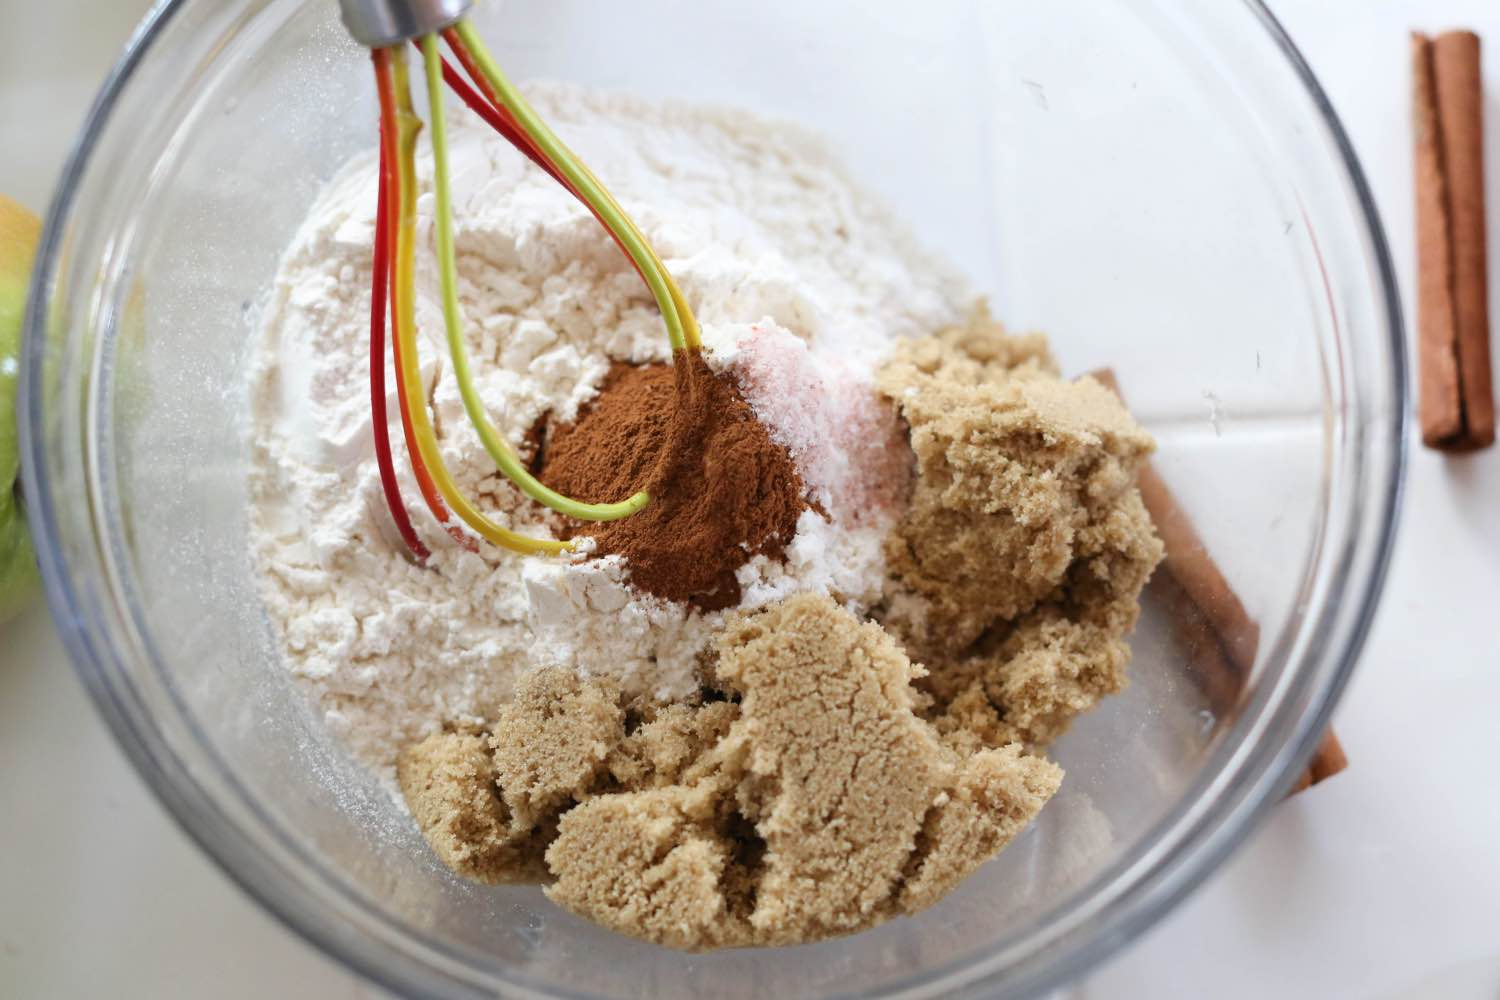 add the cinnamon to the crumble topping recipe pop shop america